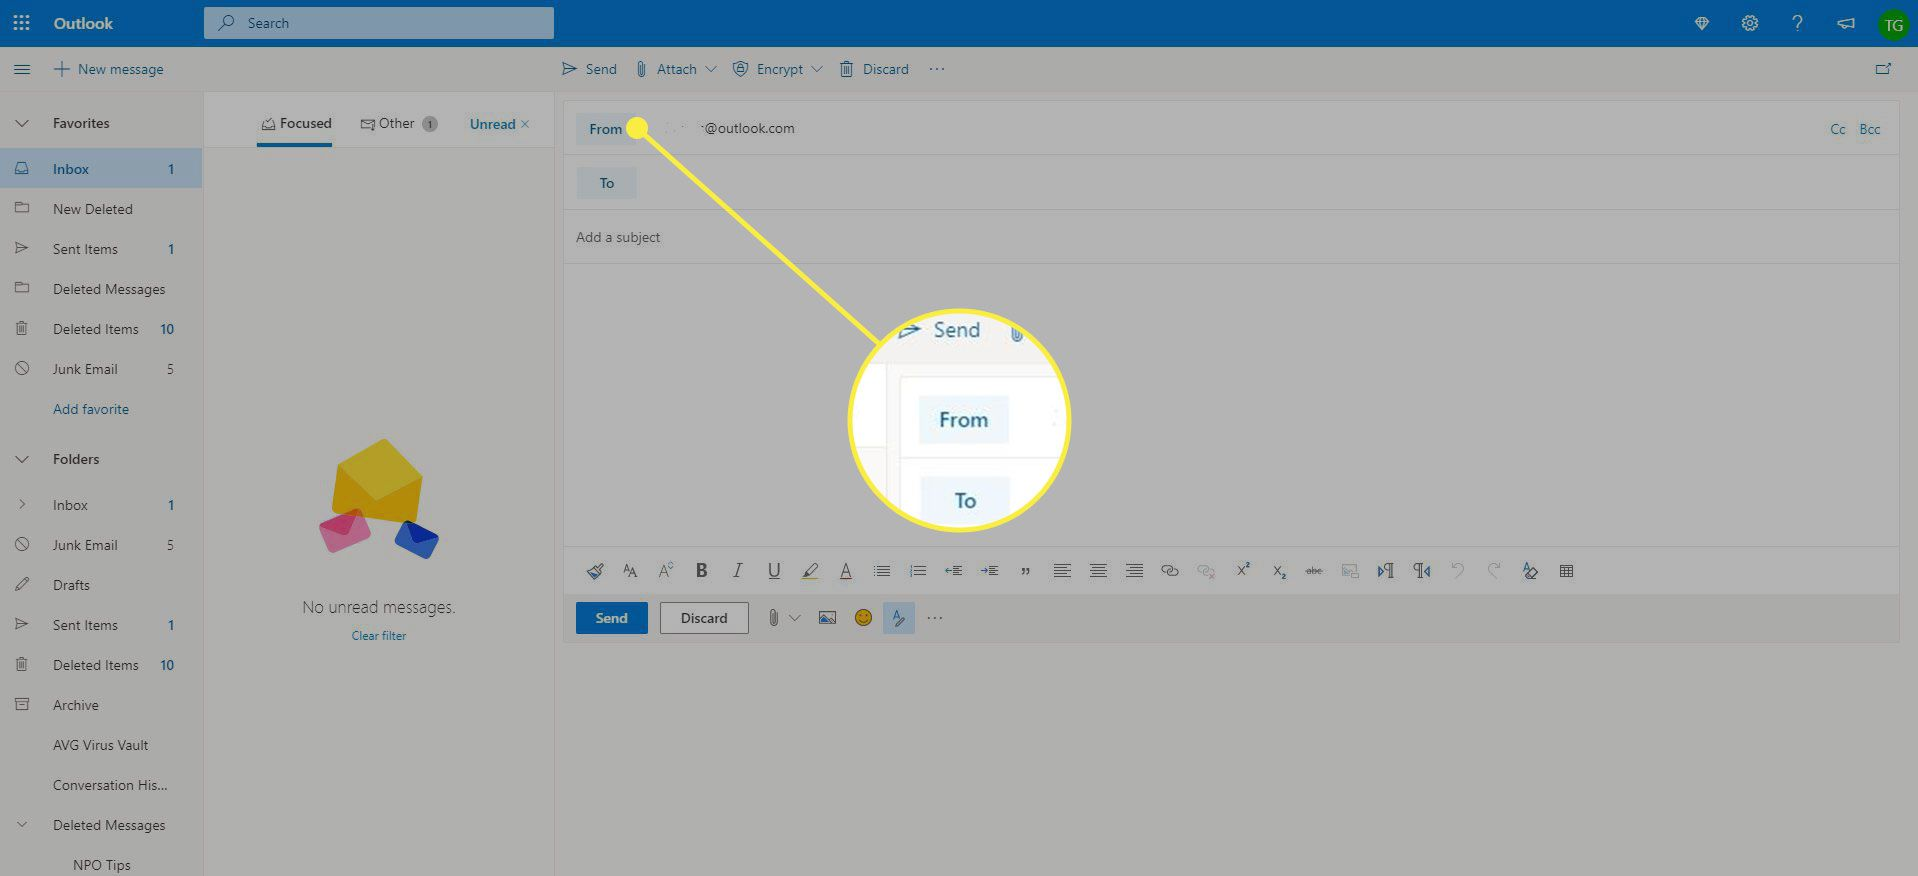 A screenshot of Outlook with the From field highlighted